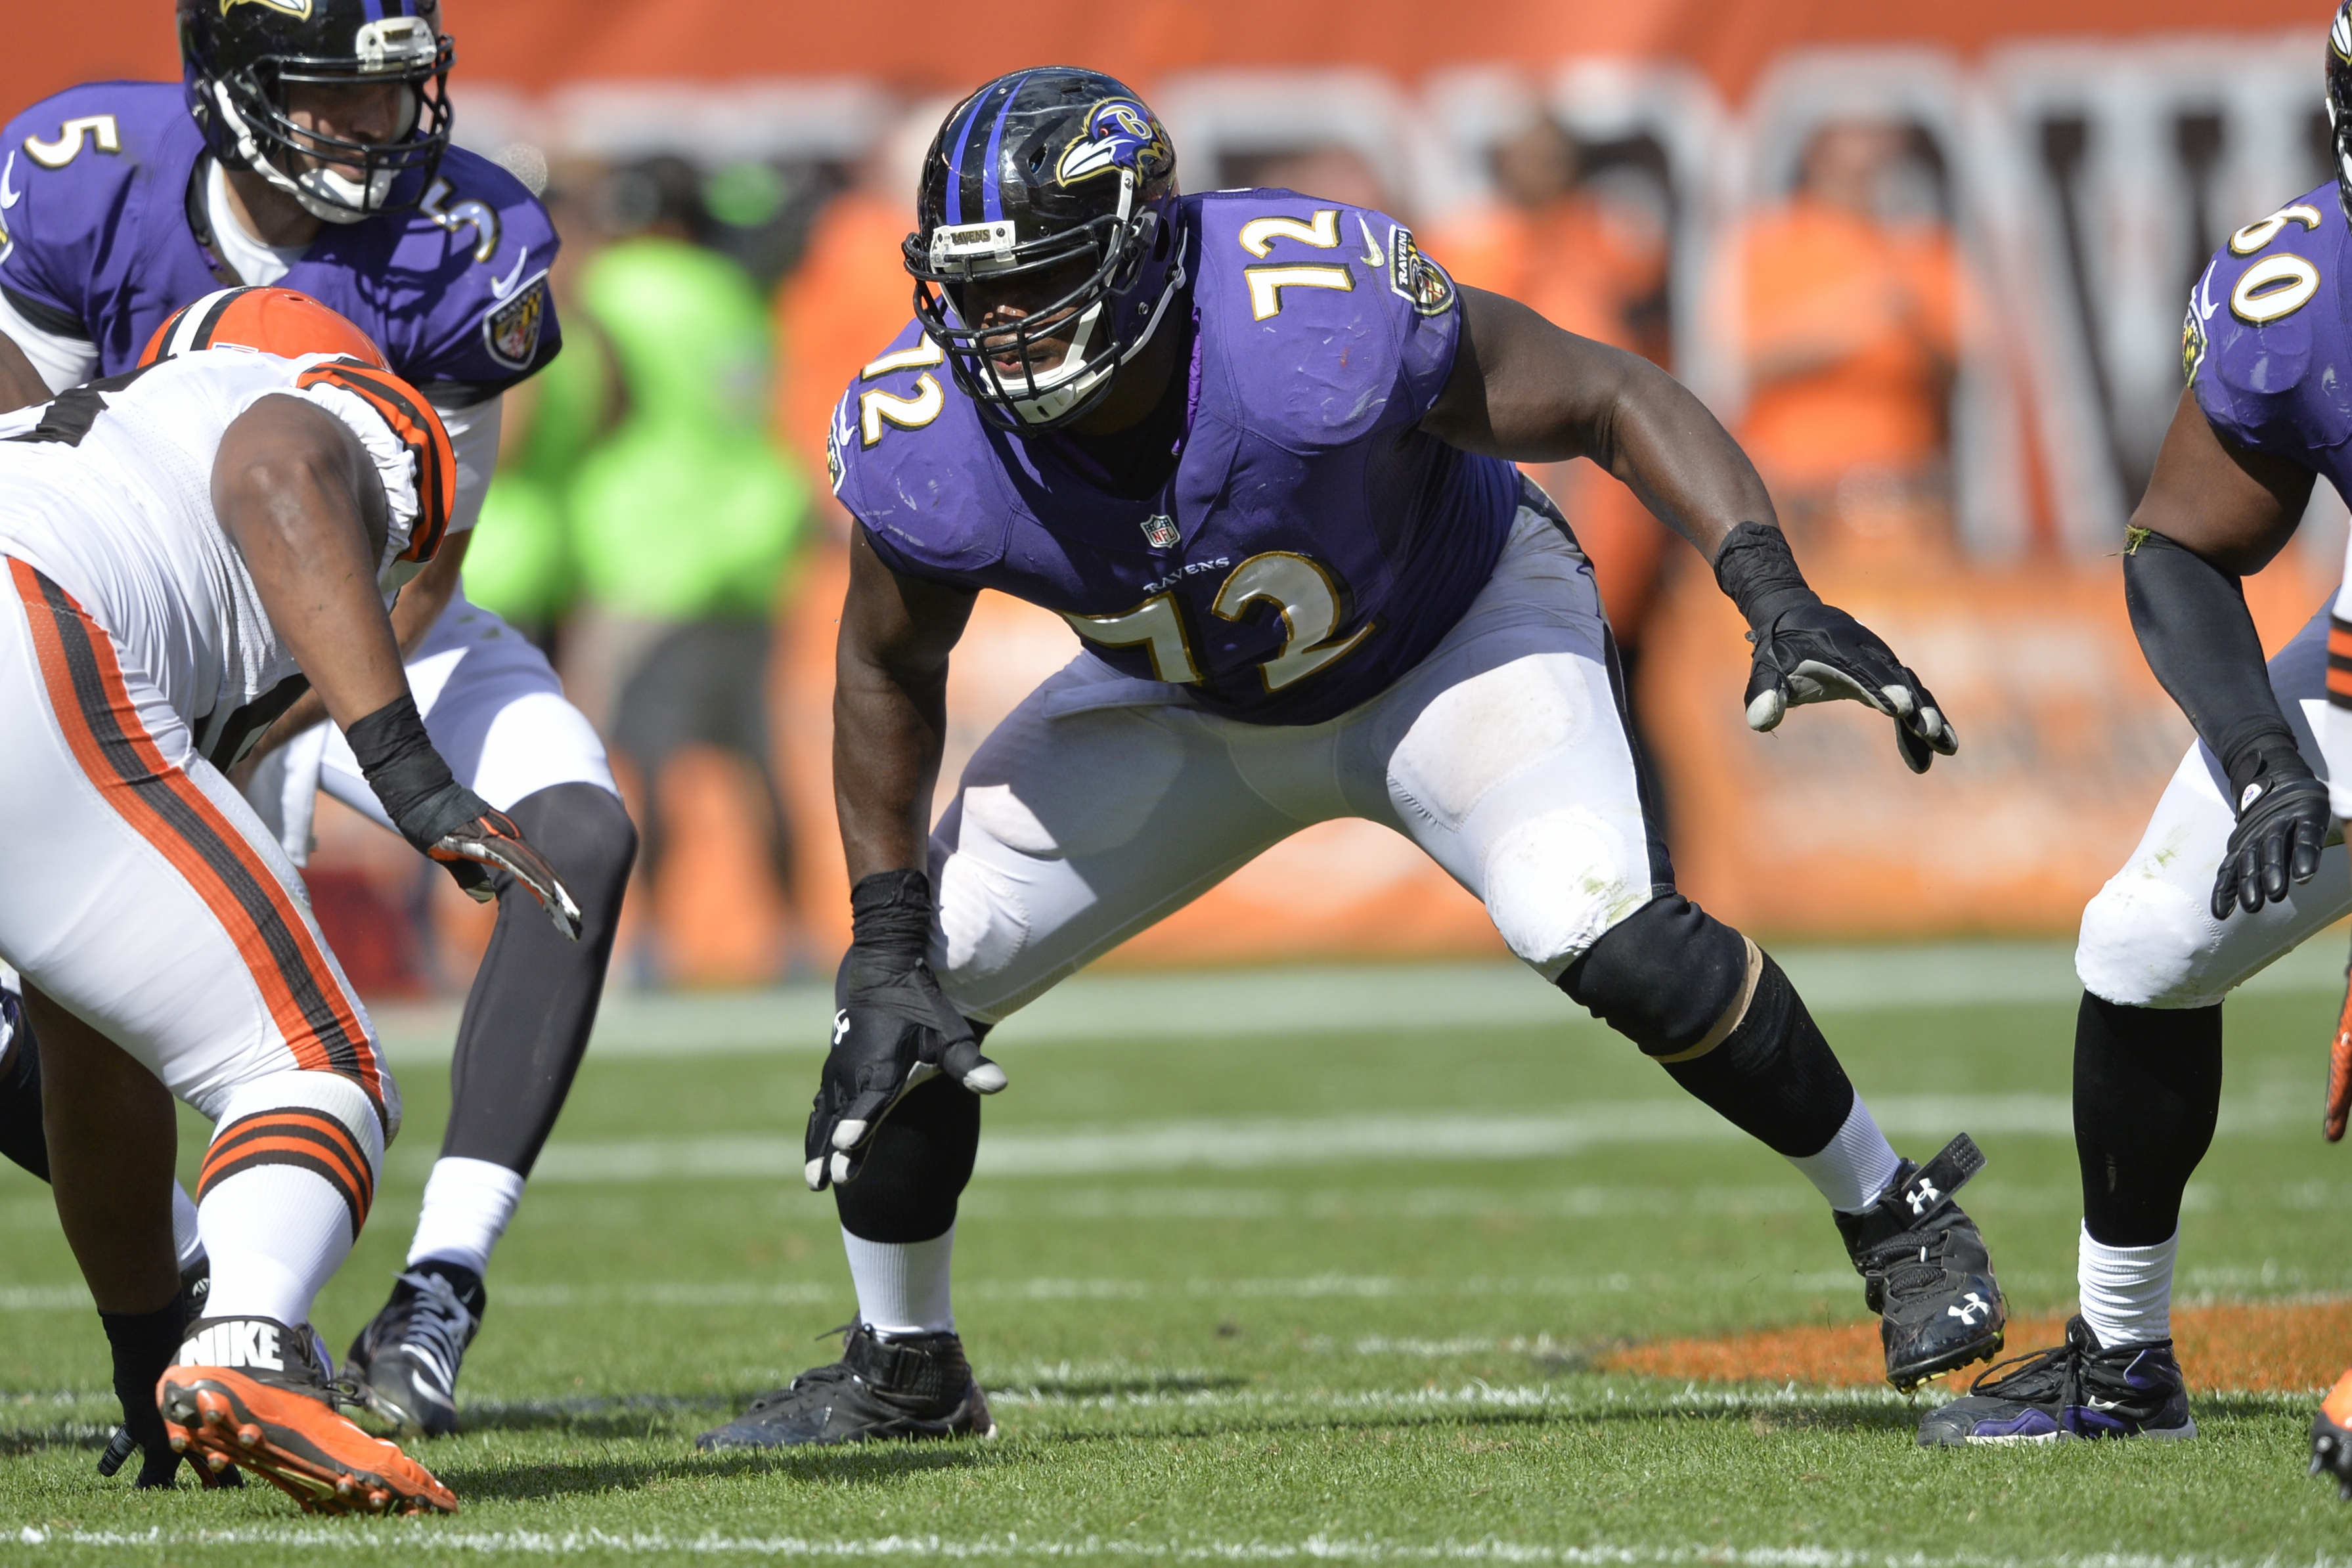 FILE - In this Sept. 21, 2014, file photo, Baltimore Ravens guard Kelechi Osemele (72) blocks during an NFL football game against the Cleveland Brown, in Cleveland. While the draft often comes down to who is the highest-rated player overall when a team's